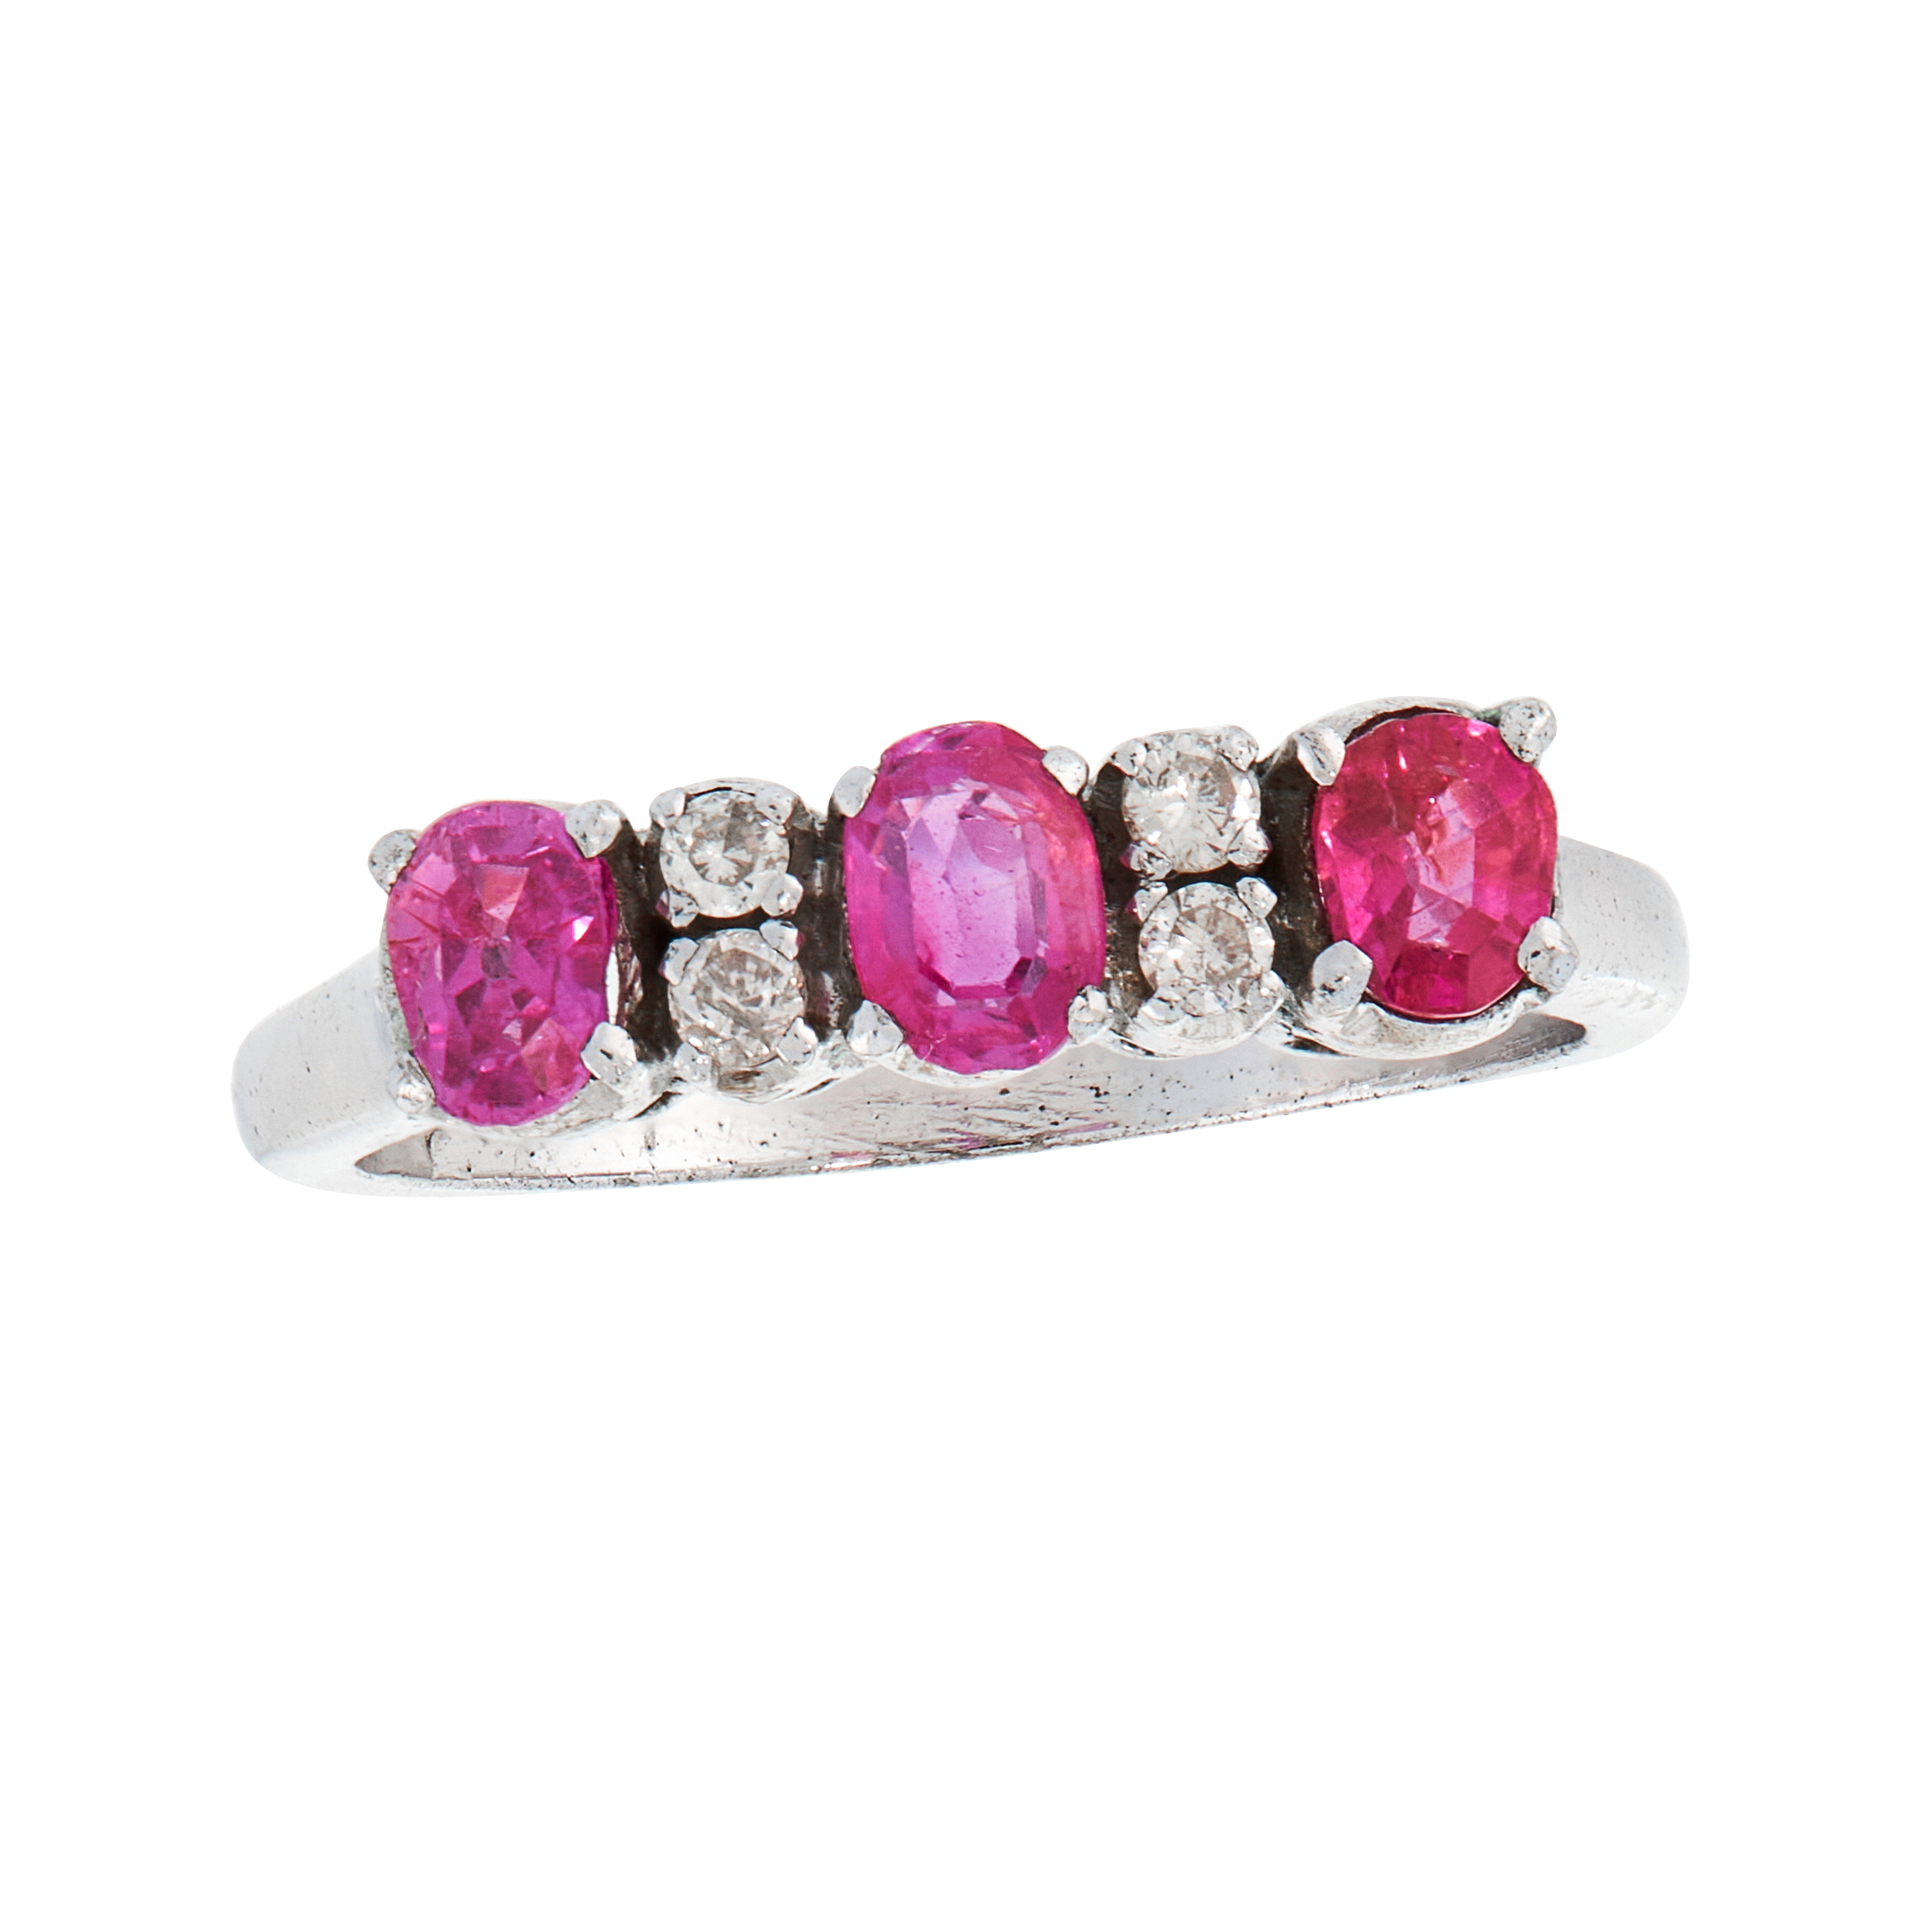 A RUBY AND DIAMOND DRESS RING set with a trio of graduated oval cut rubies punctuated by pairs of